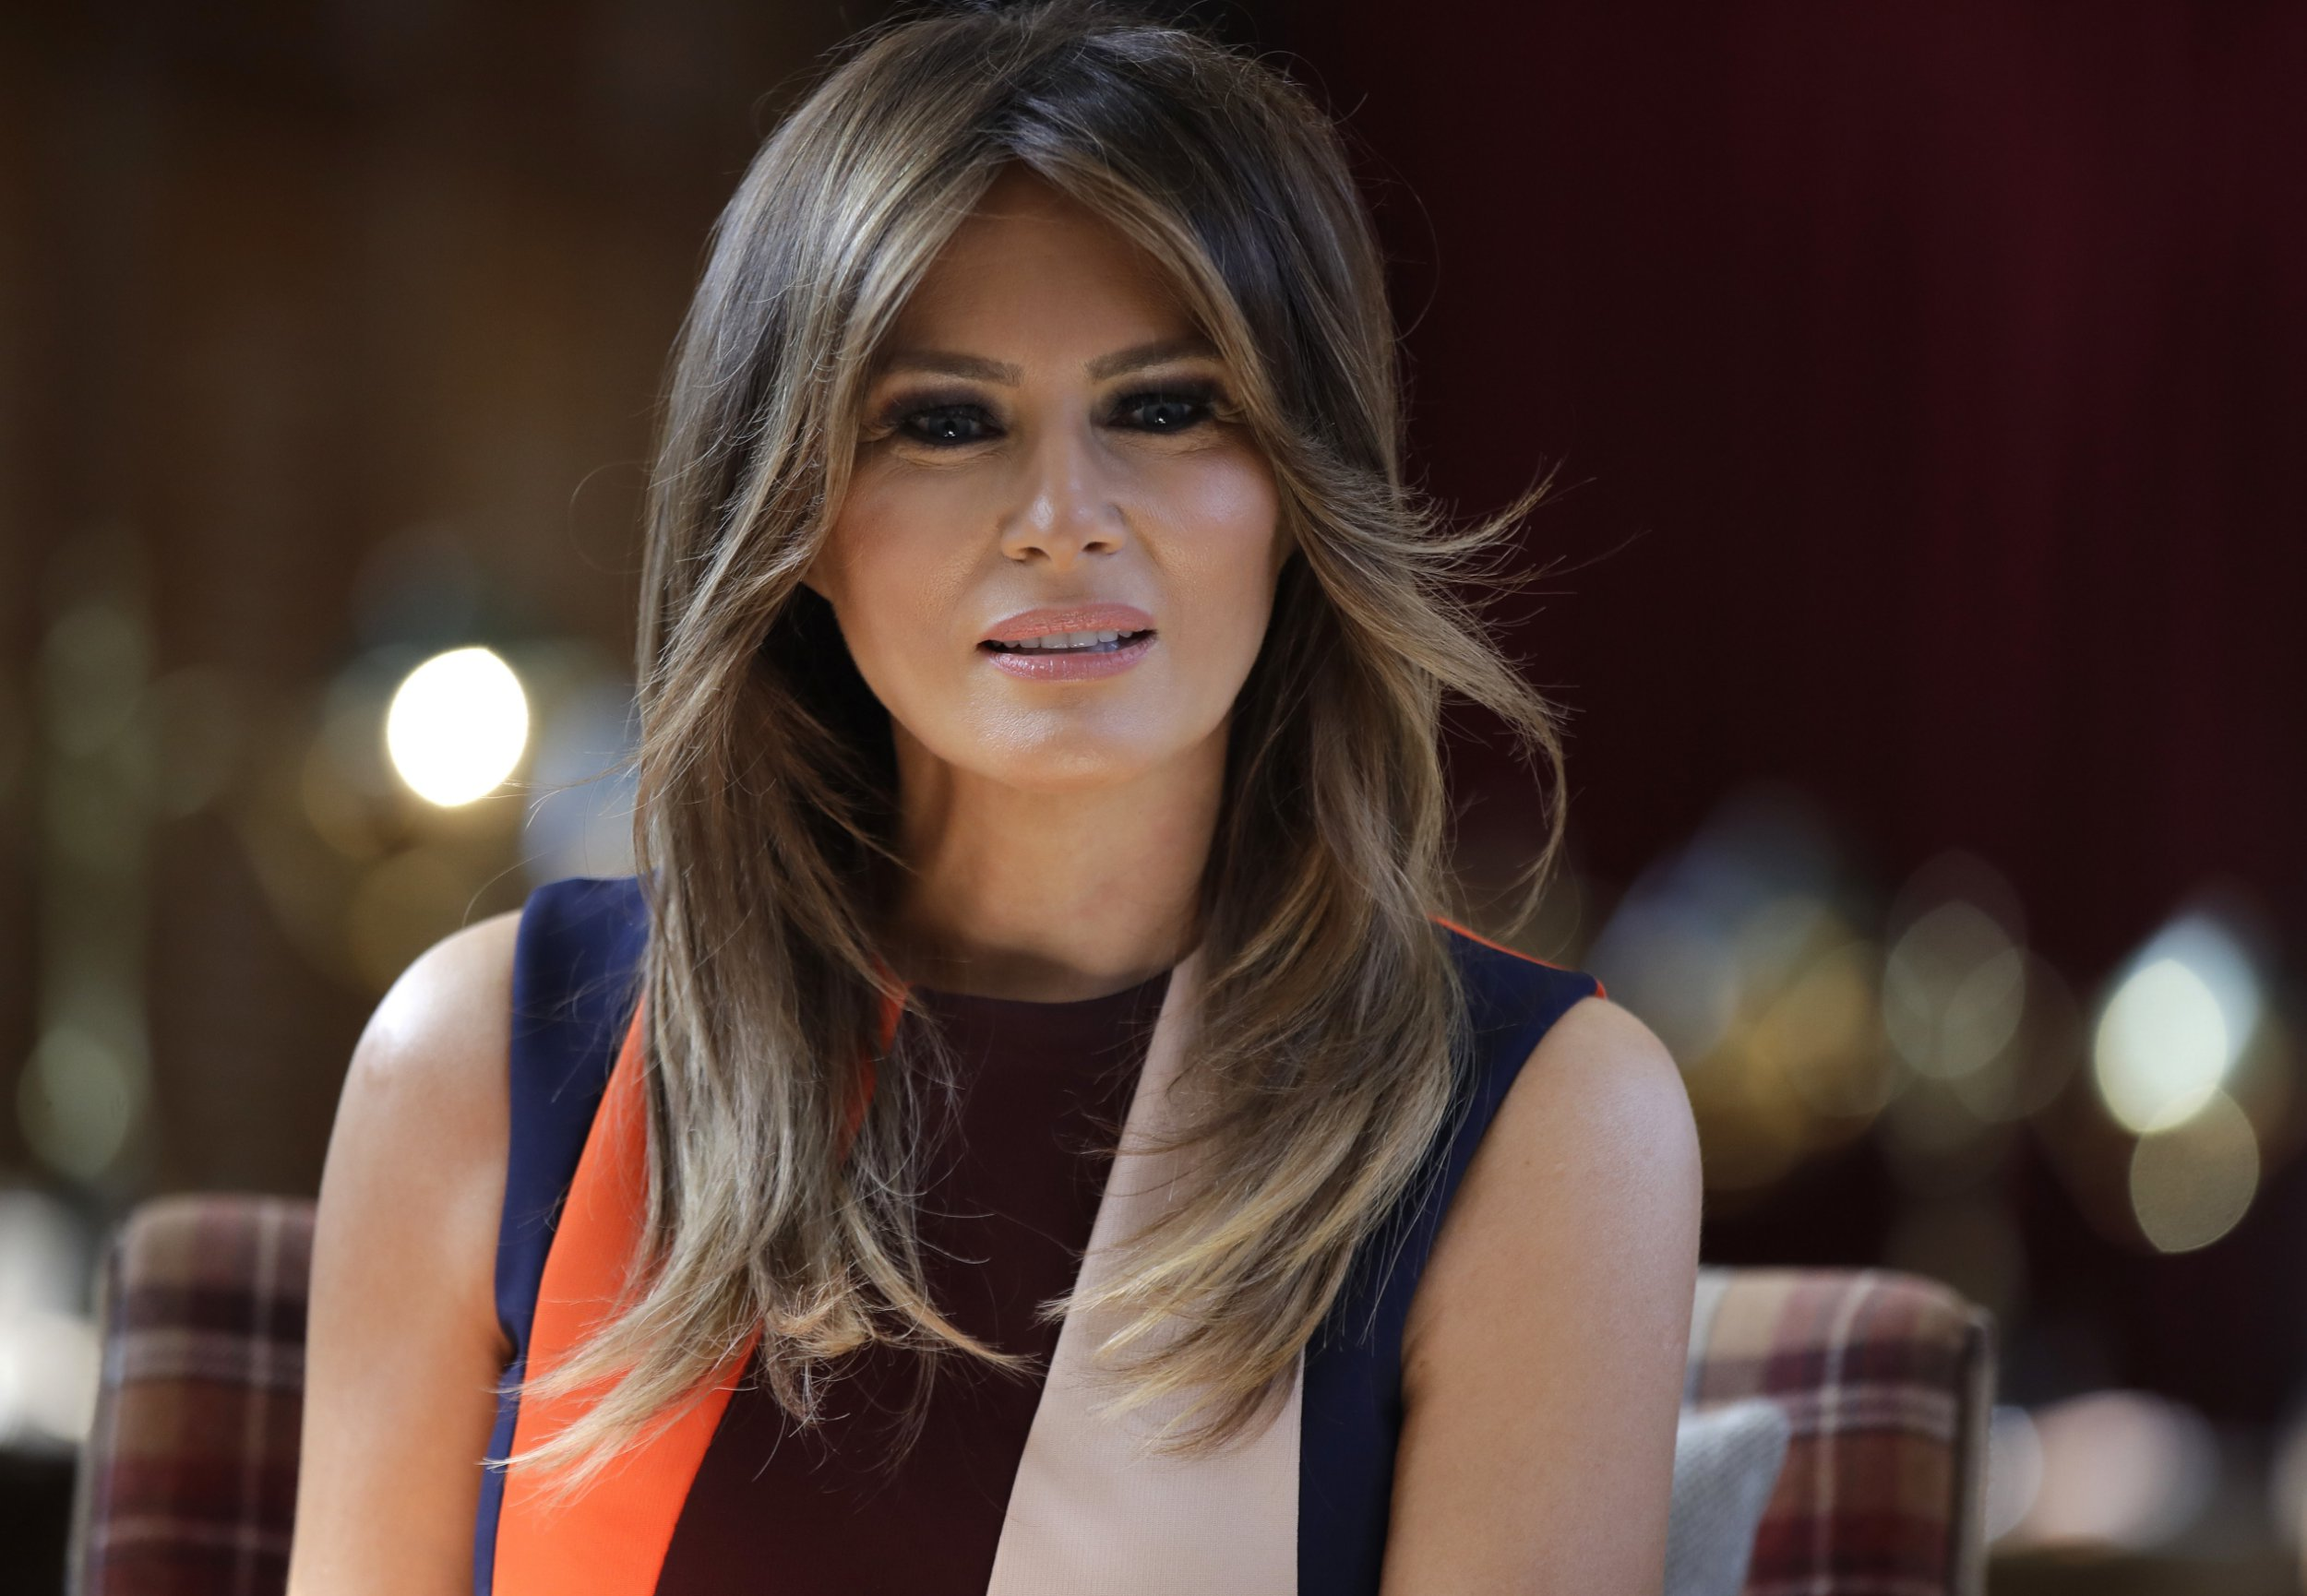 U.S. First Lady Melania Trump takes a seat during a visit to The Royal Hospital Chelsea in central London Friday, July 13, 2018. (AP Photo/Luca Bruno, Pool)